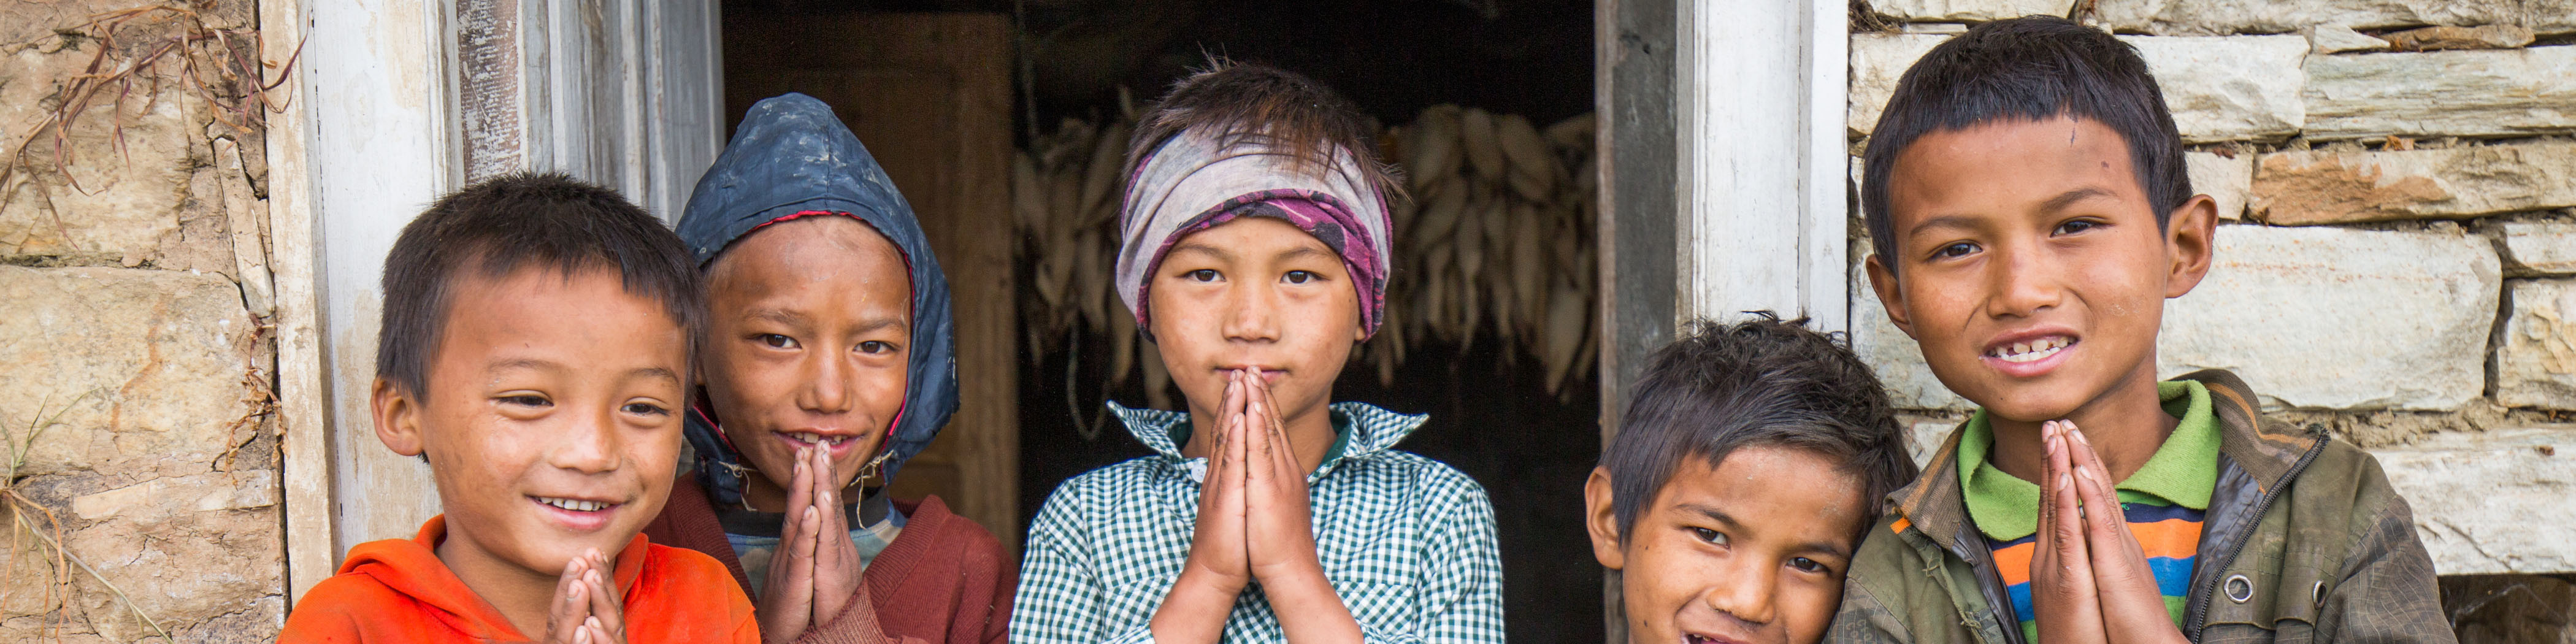 Nepal: Social Inclusion and Protection